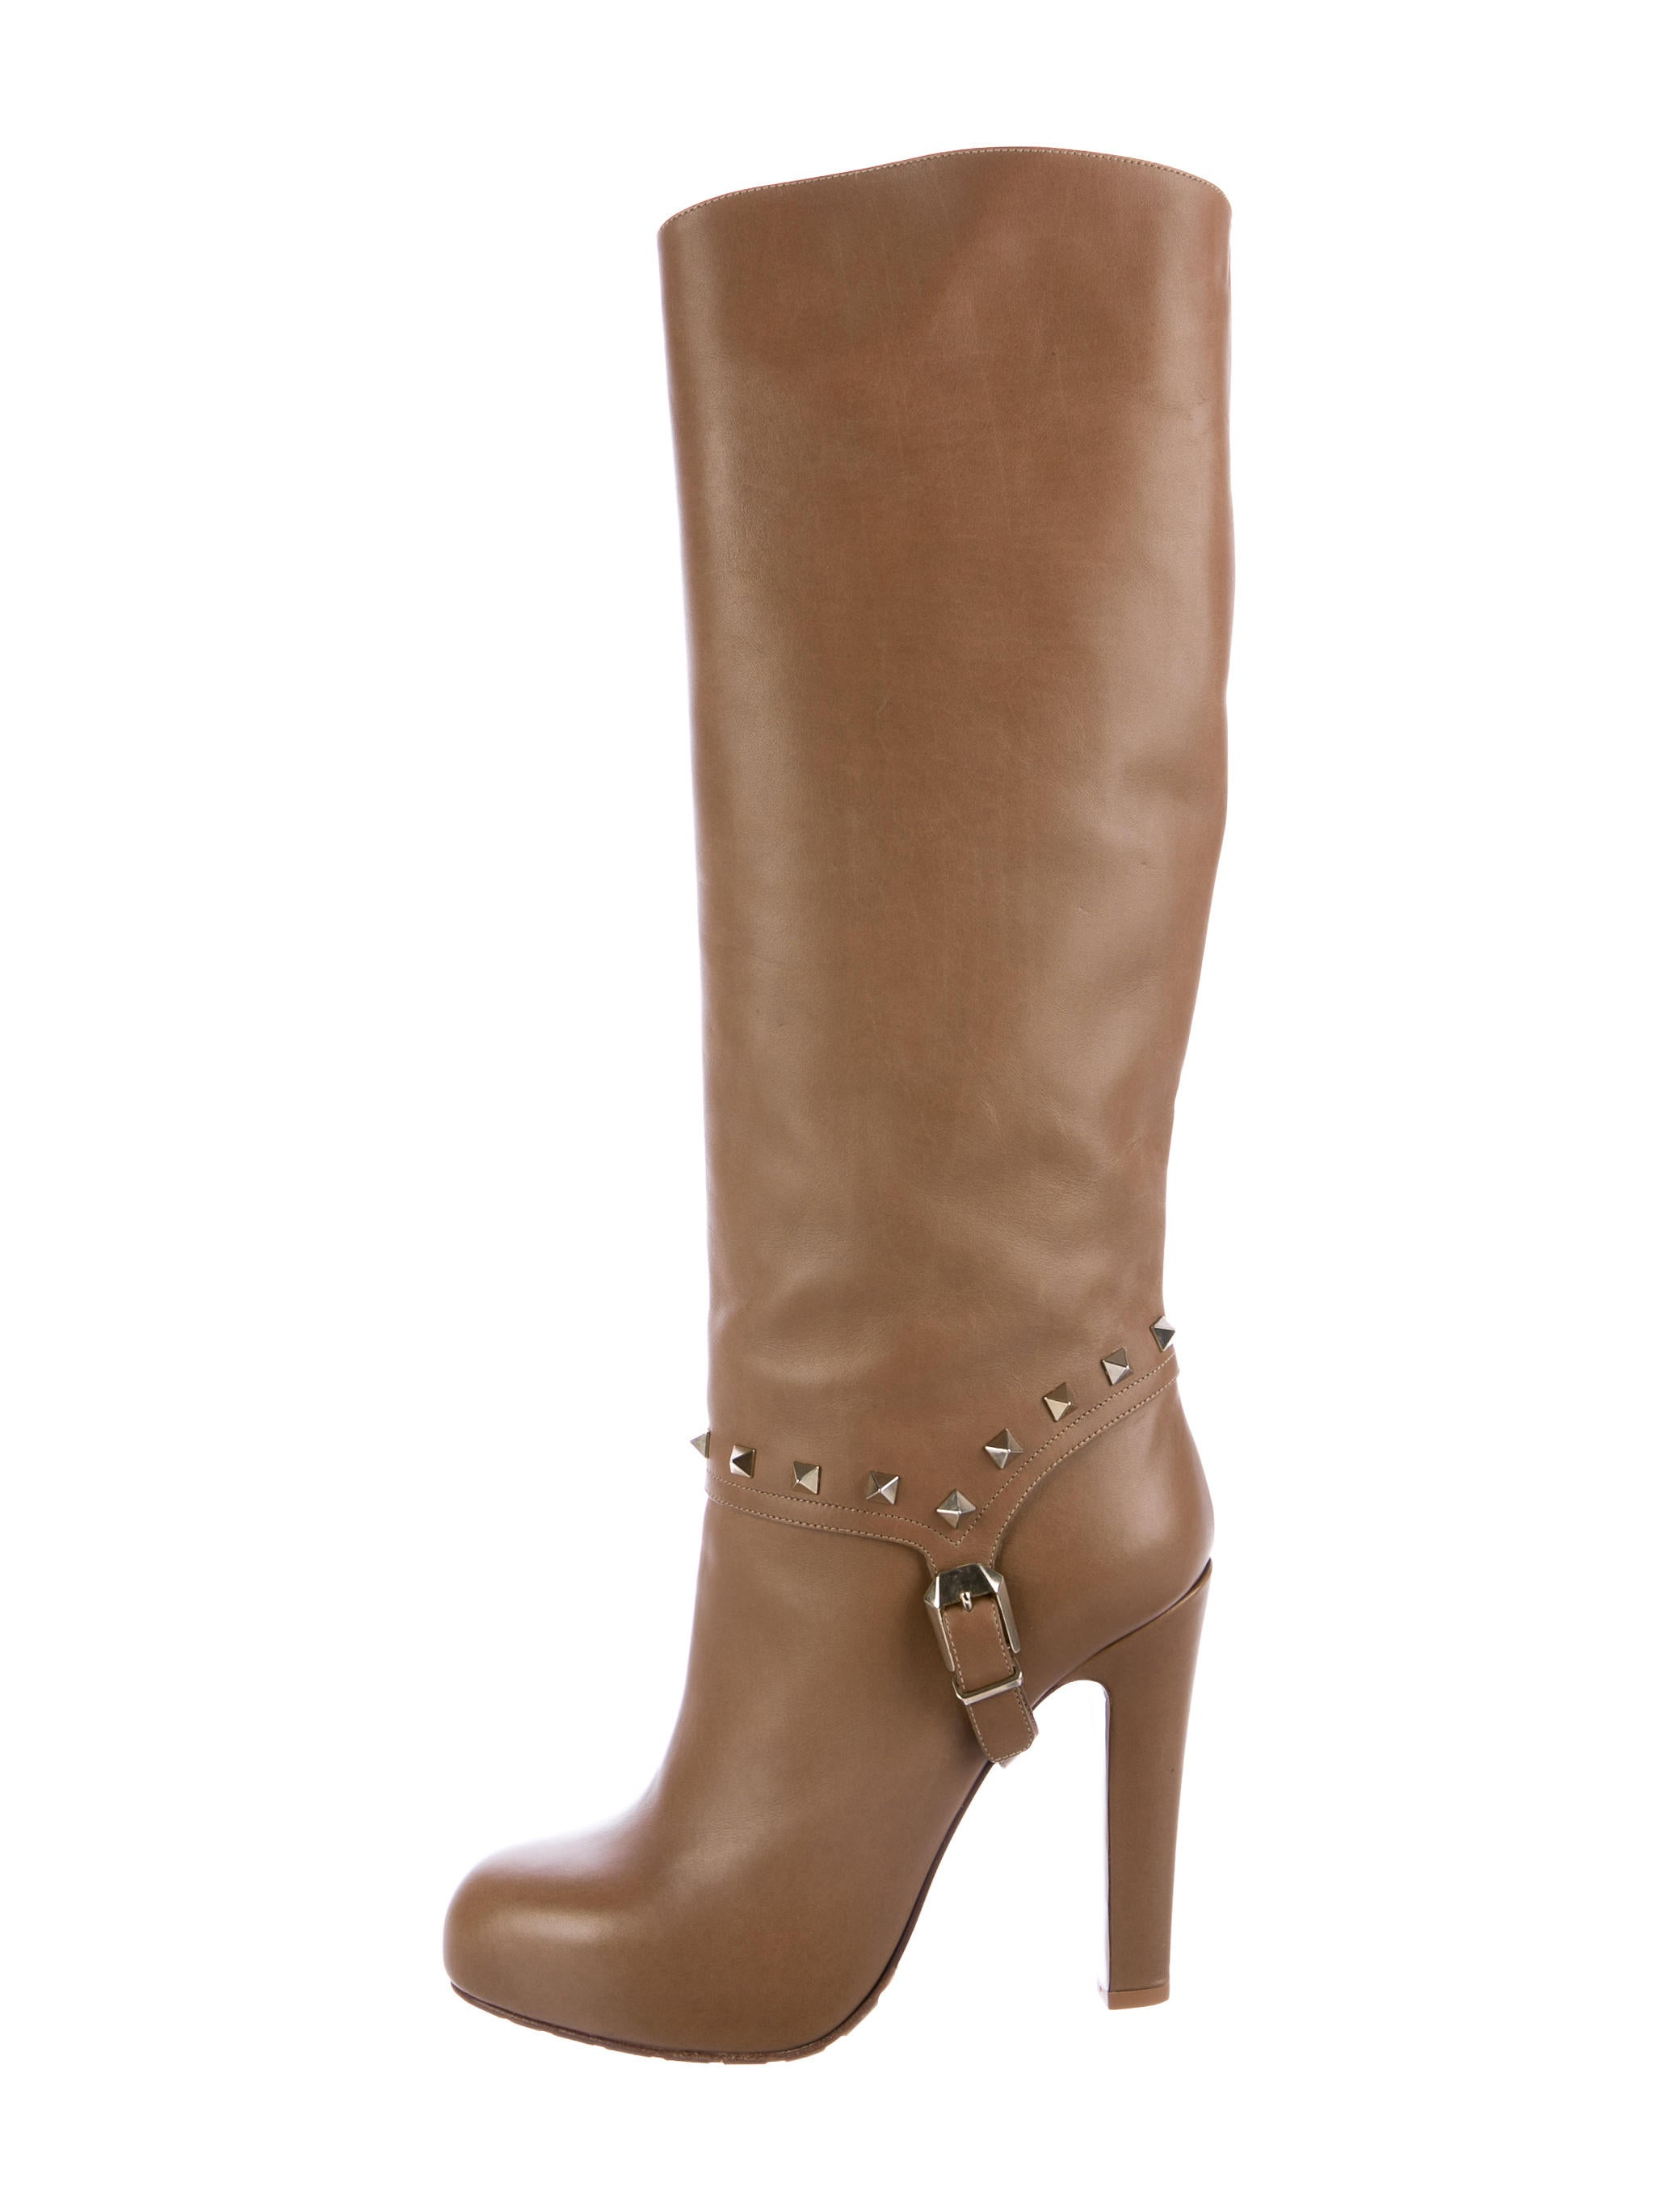 sale with credit card Valentino Rockstud Knee-High Boots w/ Tags cheap sale excellent PXSTmjsIp